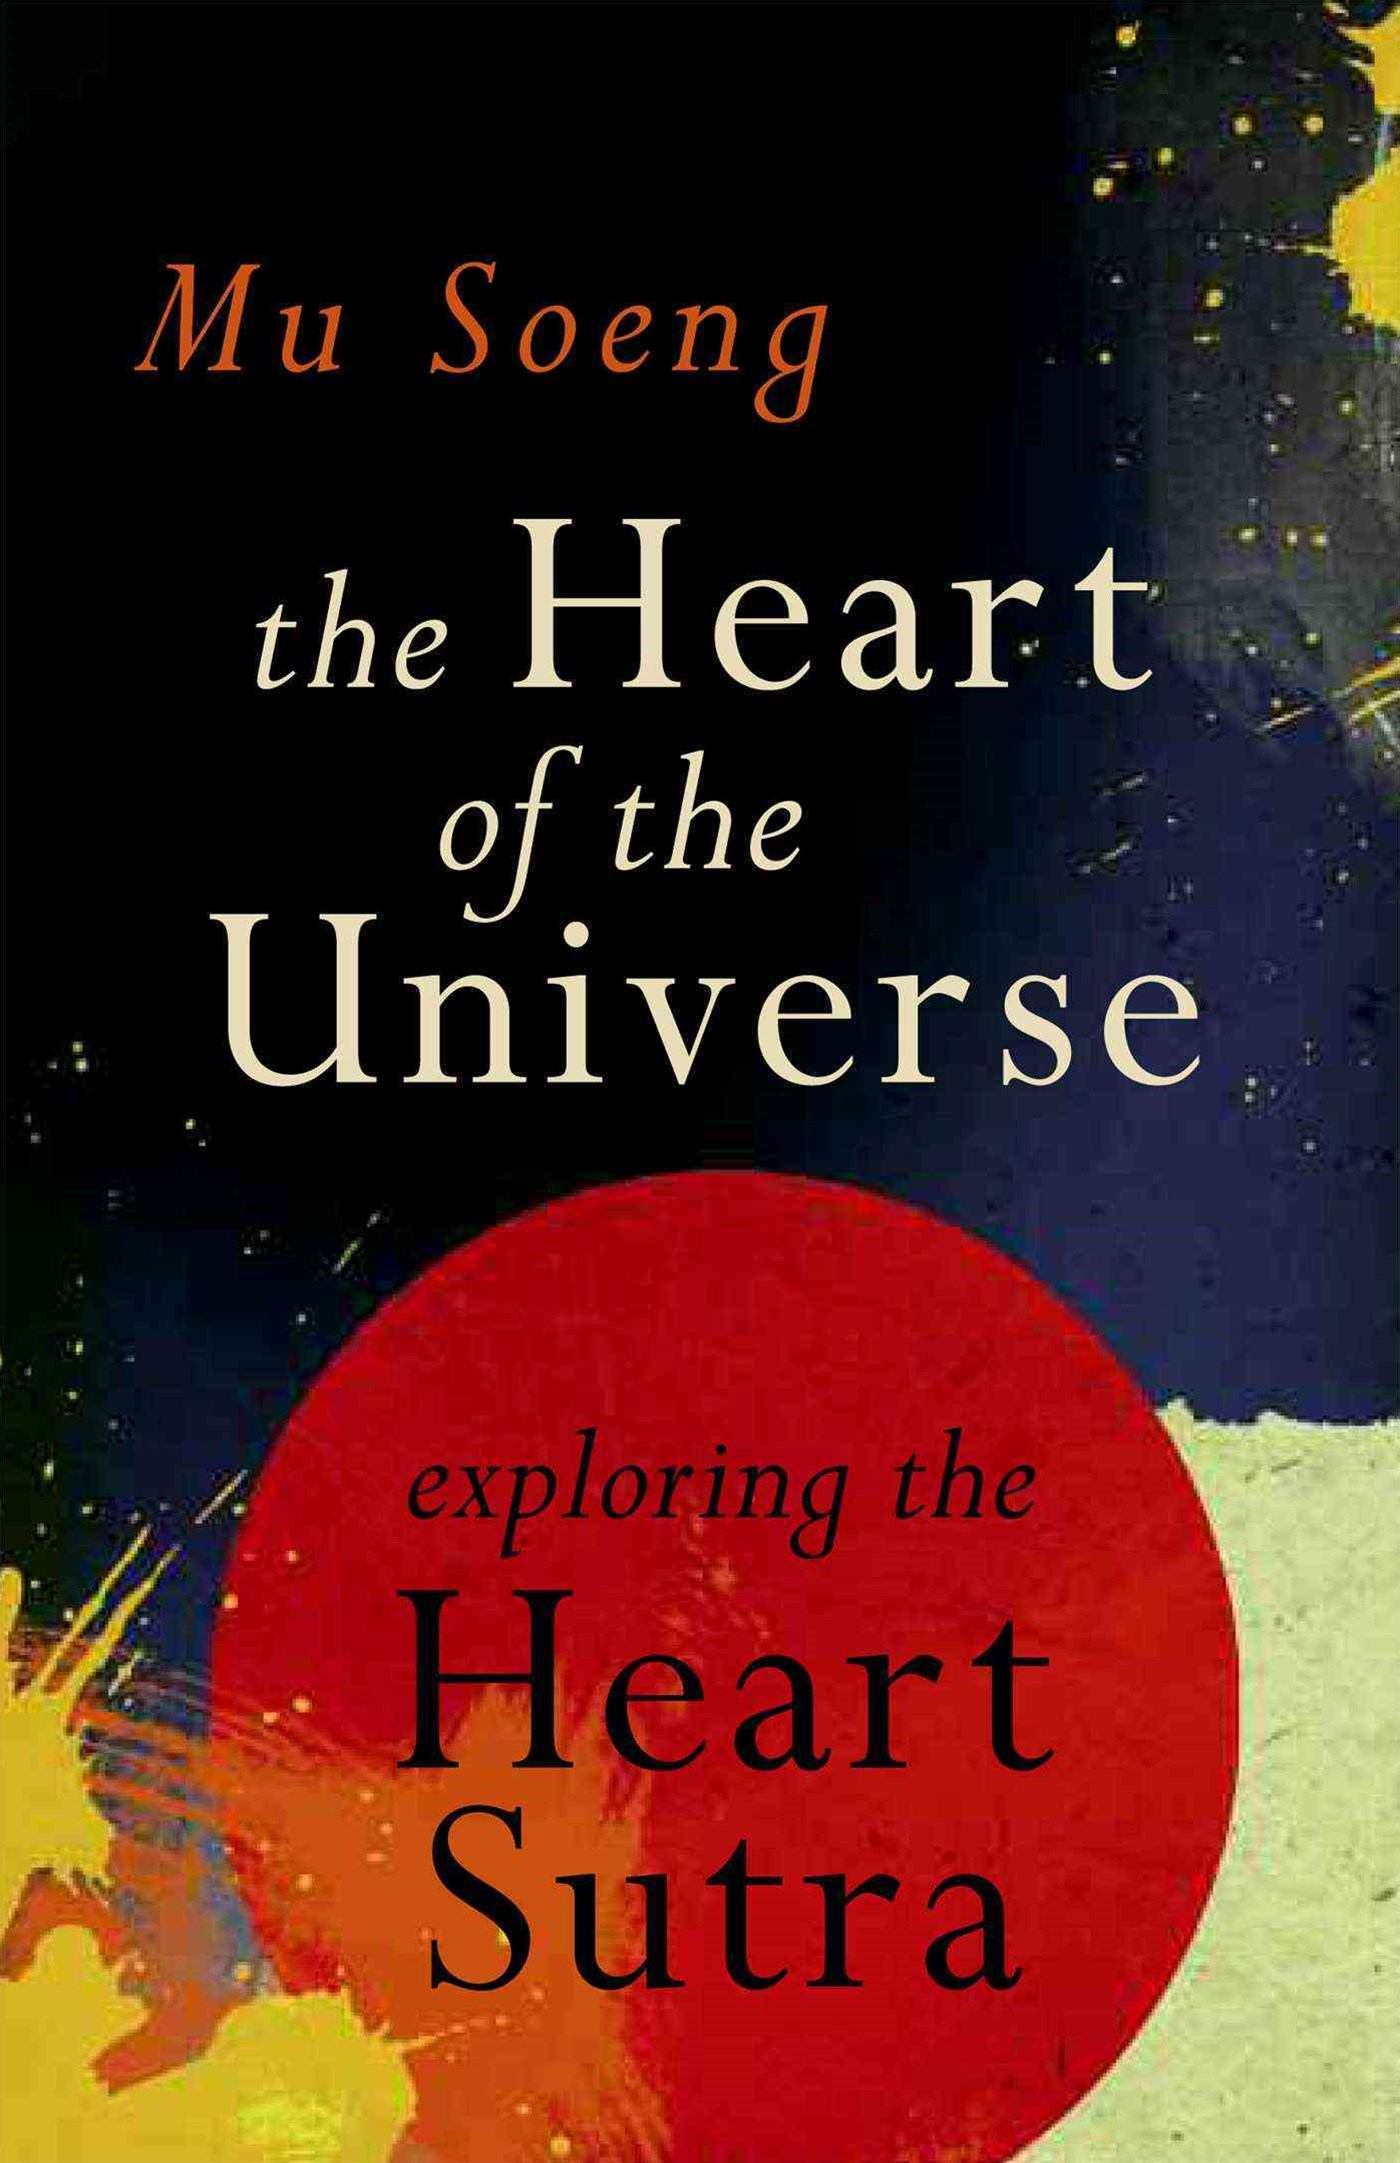 Heart of the Universe